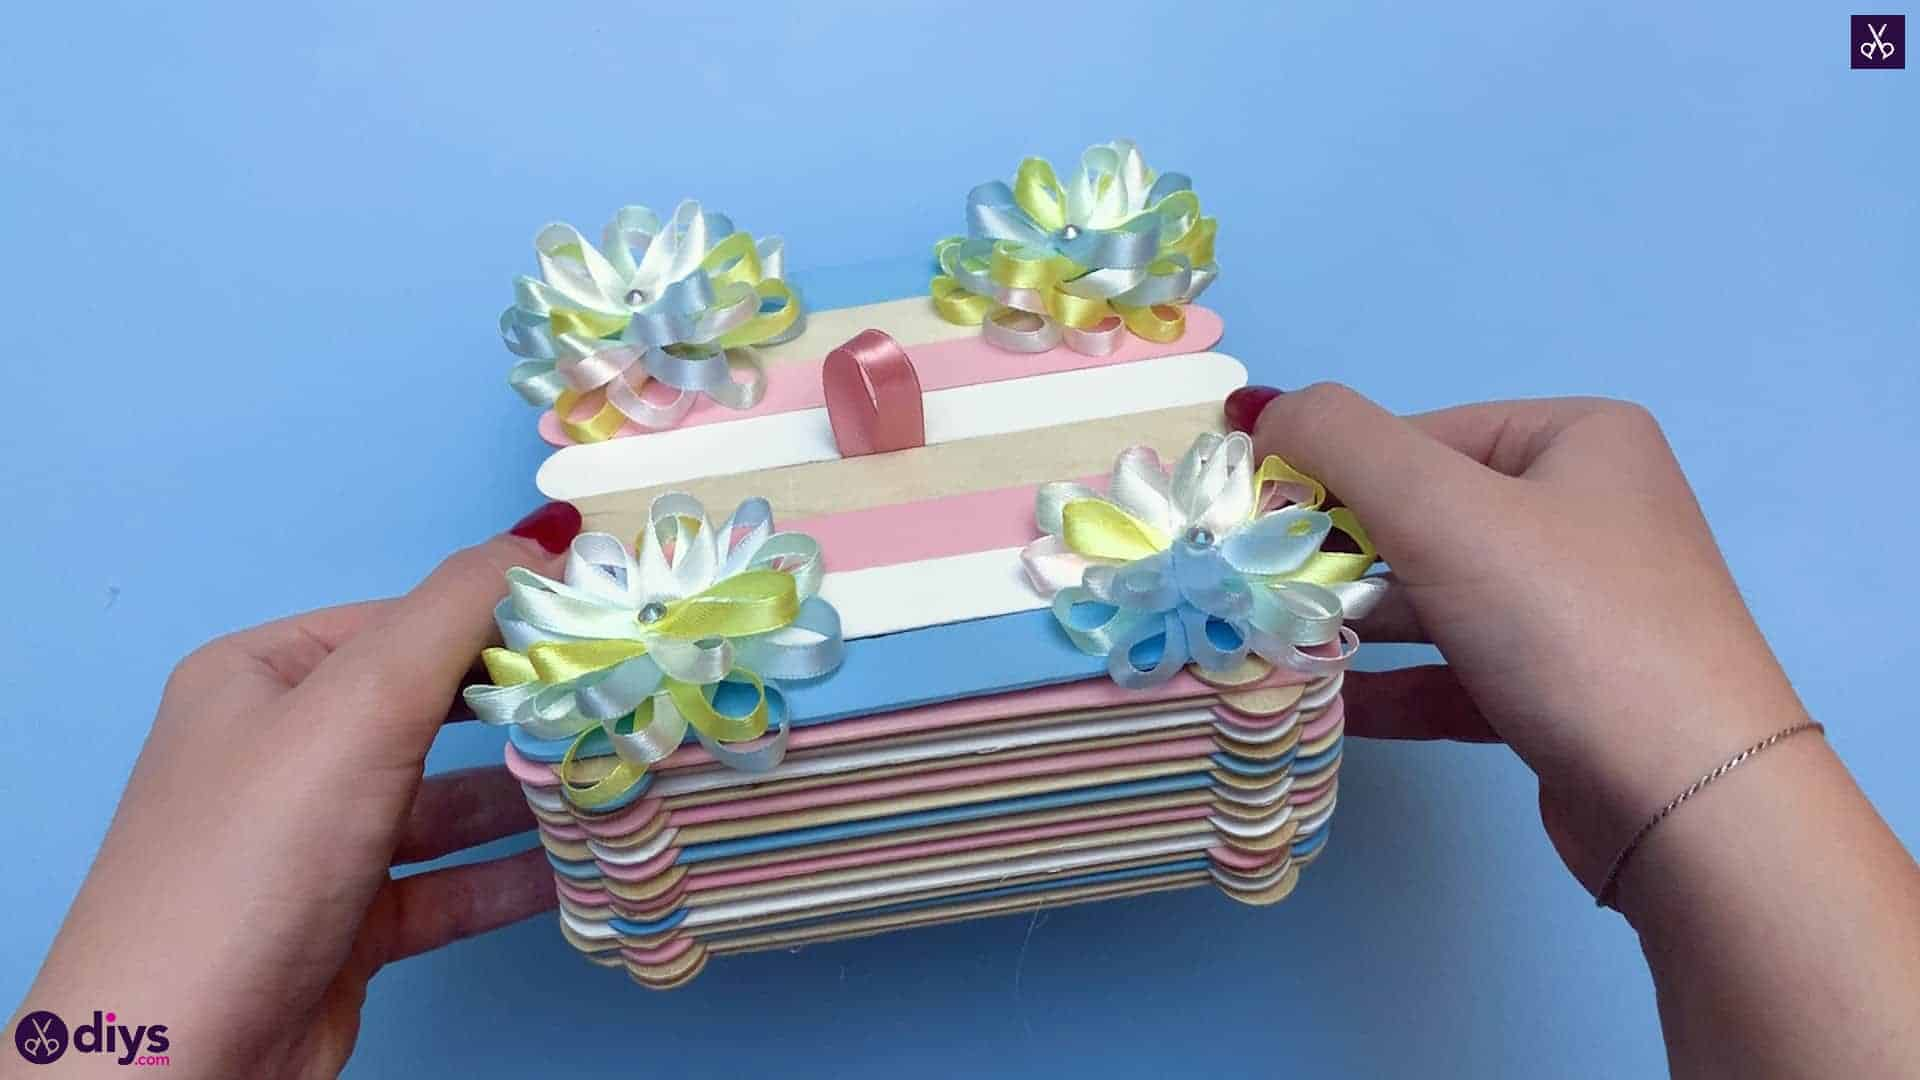 Diy popsicle stick jewelry box